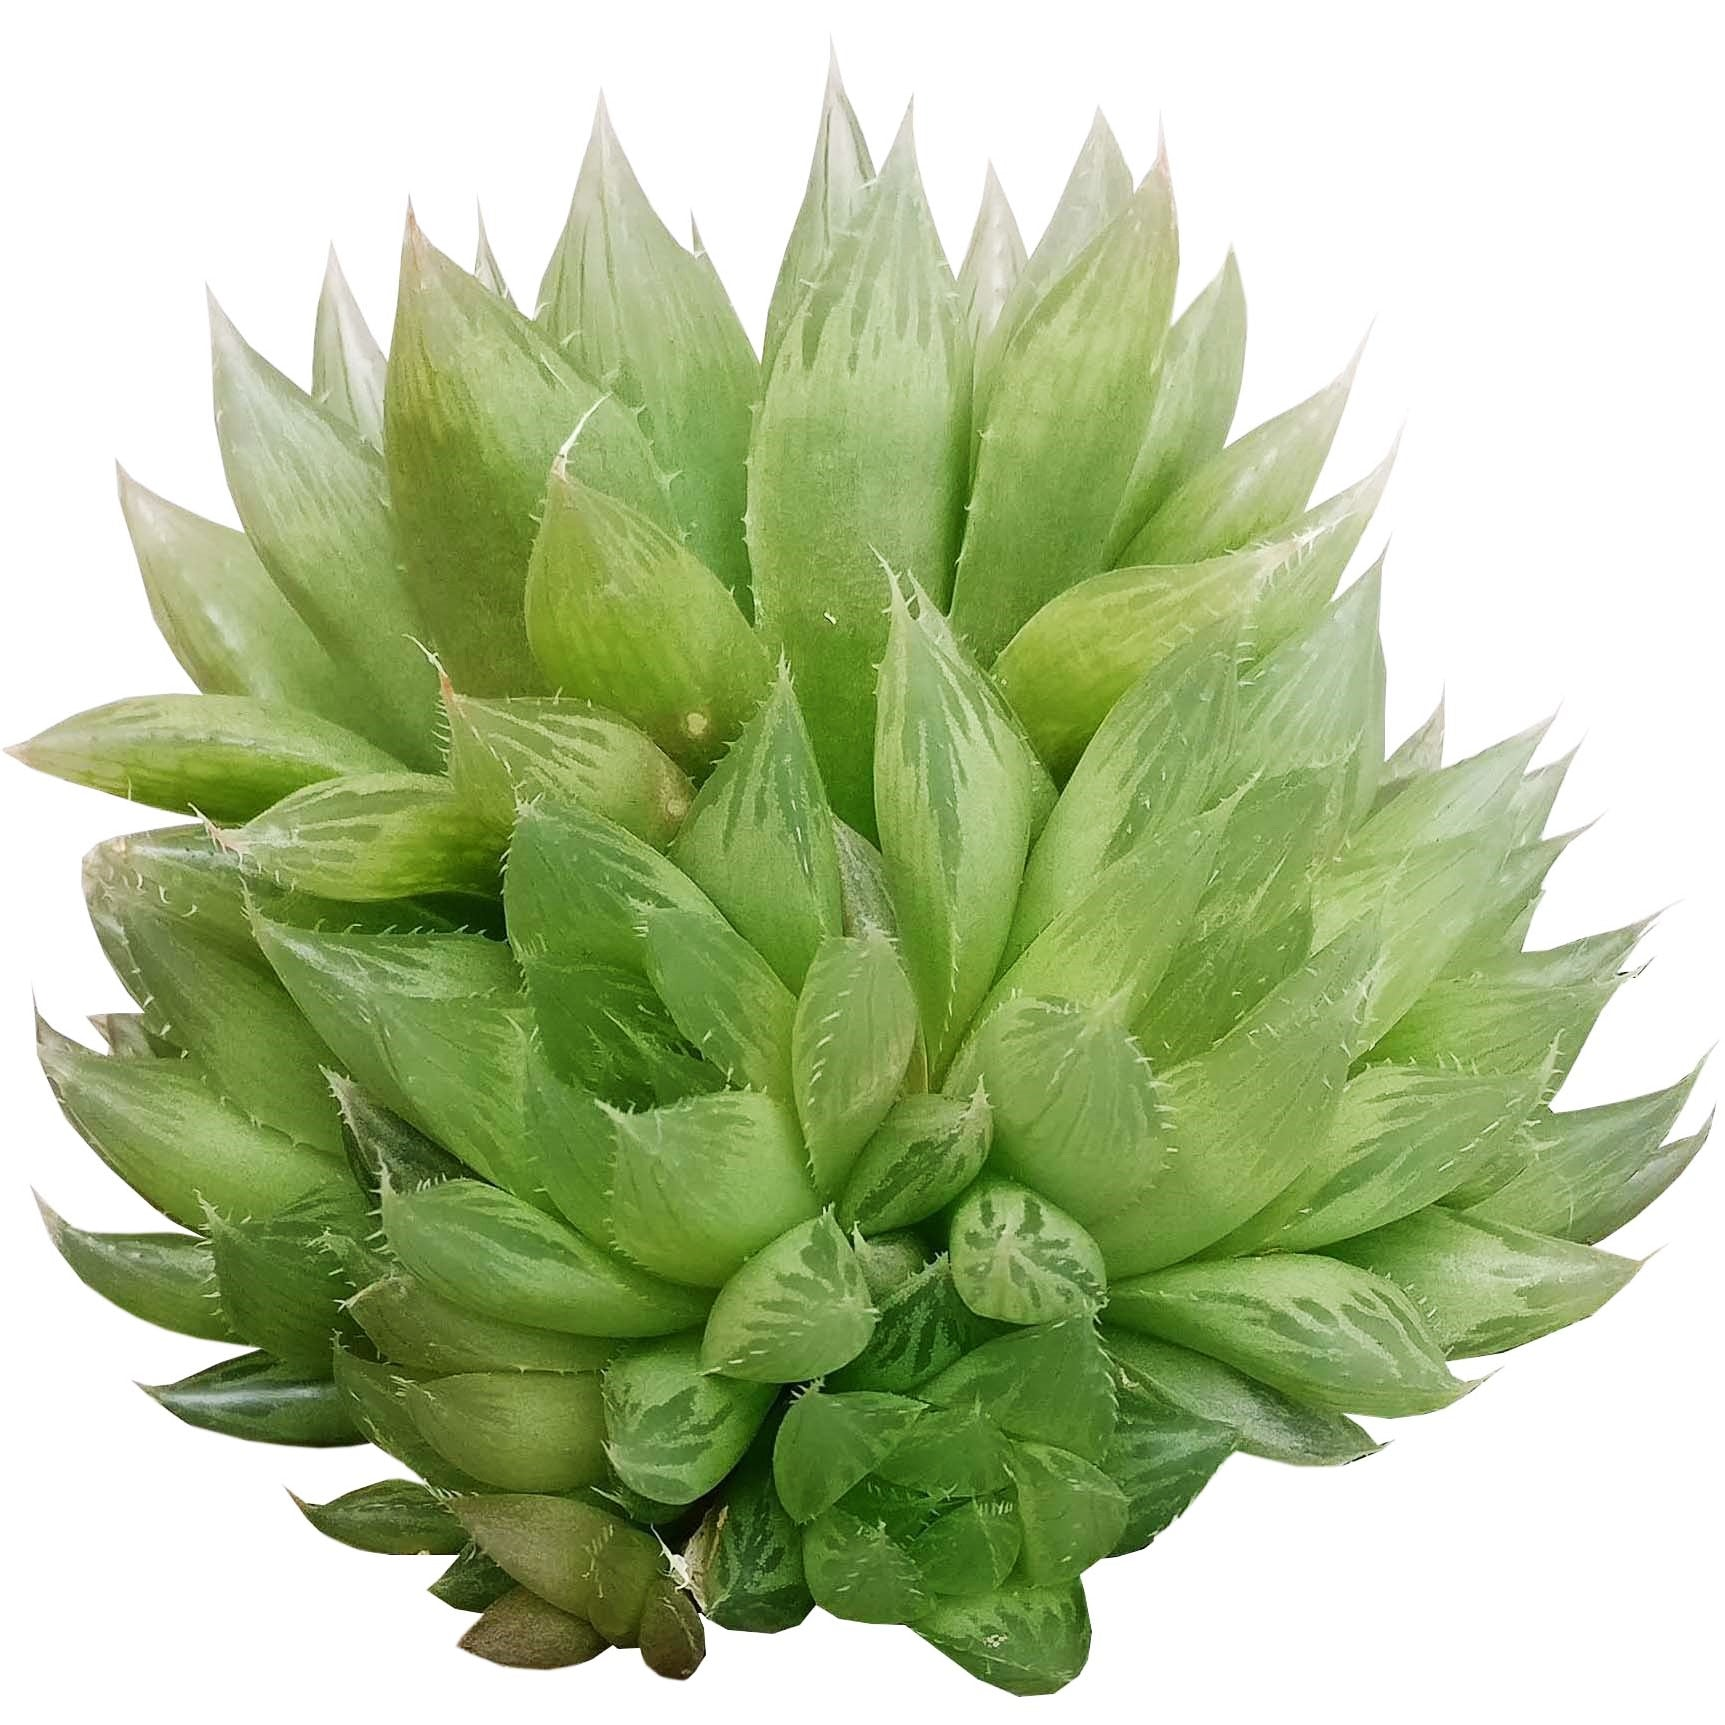 Haworthia Cooperi for sale, succulents shop in California, how to grow succulents, monthly succulents, indoor succulents, succulent care tips, succulent care, succulent subscription, cactus, Haworthia Cooperi in California, How to grow Haworthia Cooperi